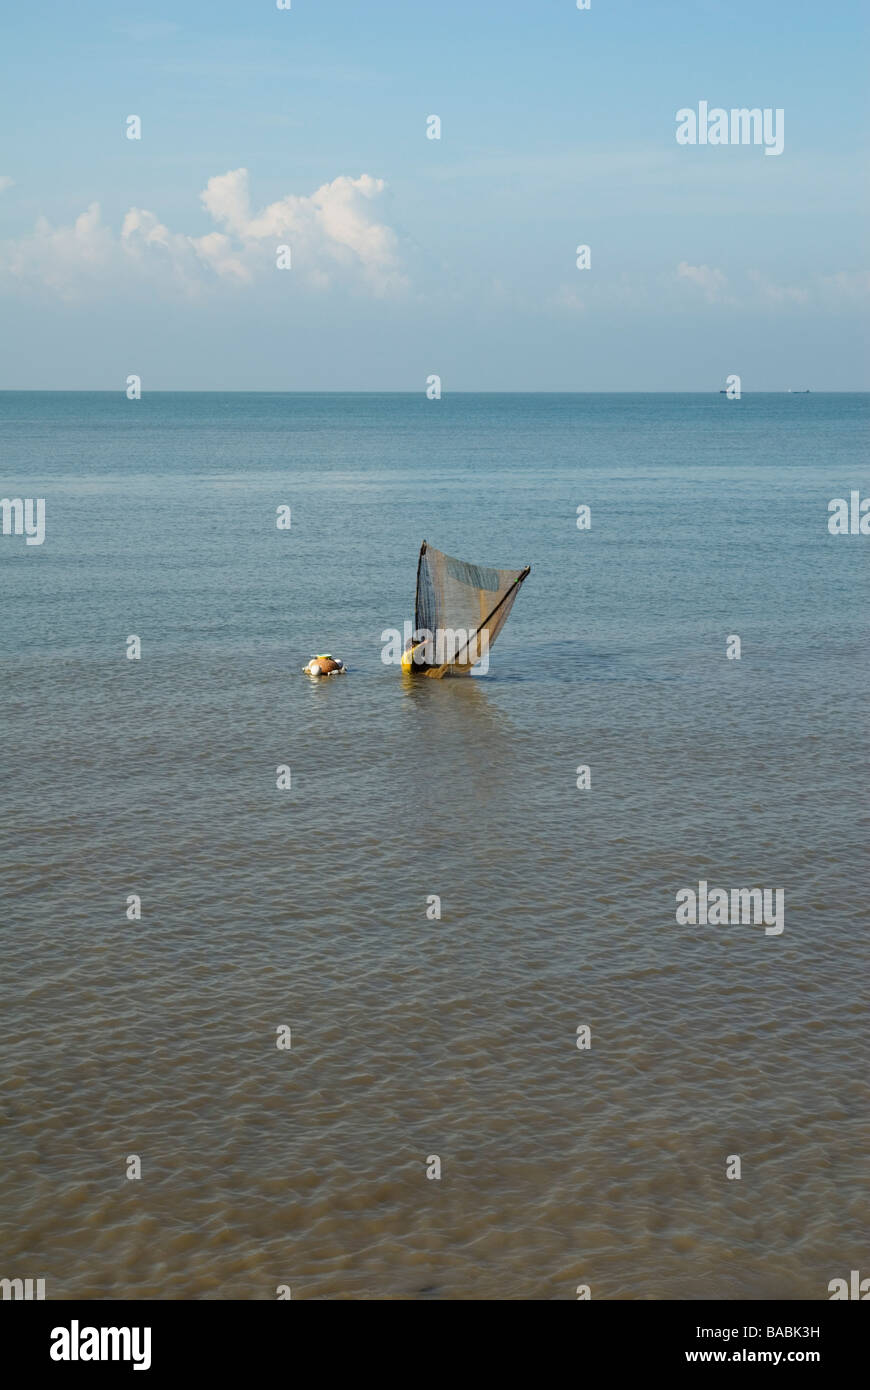 Traditional fishing using a triangular net off the coast of Malacca, Malaysia - Stock Image